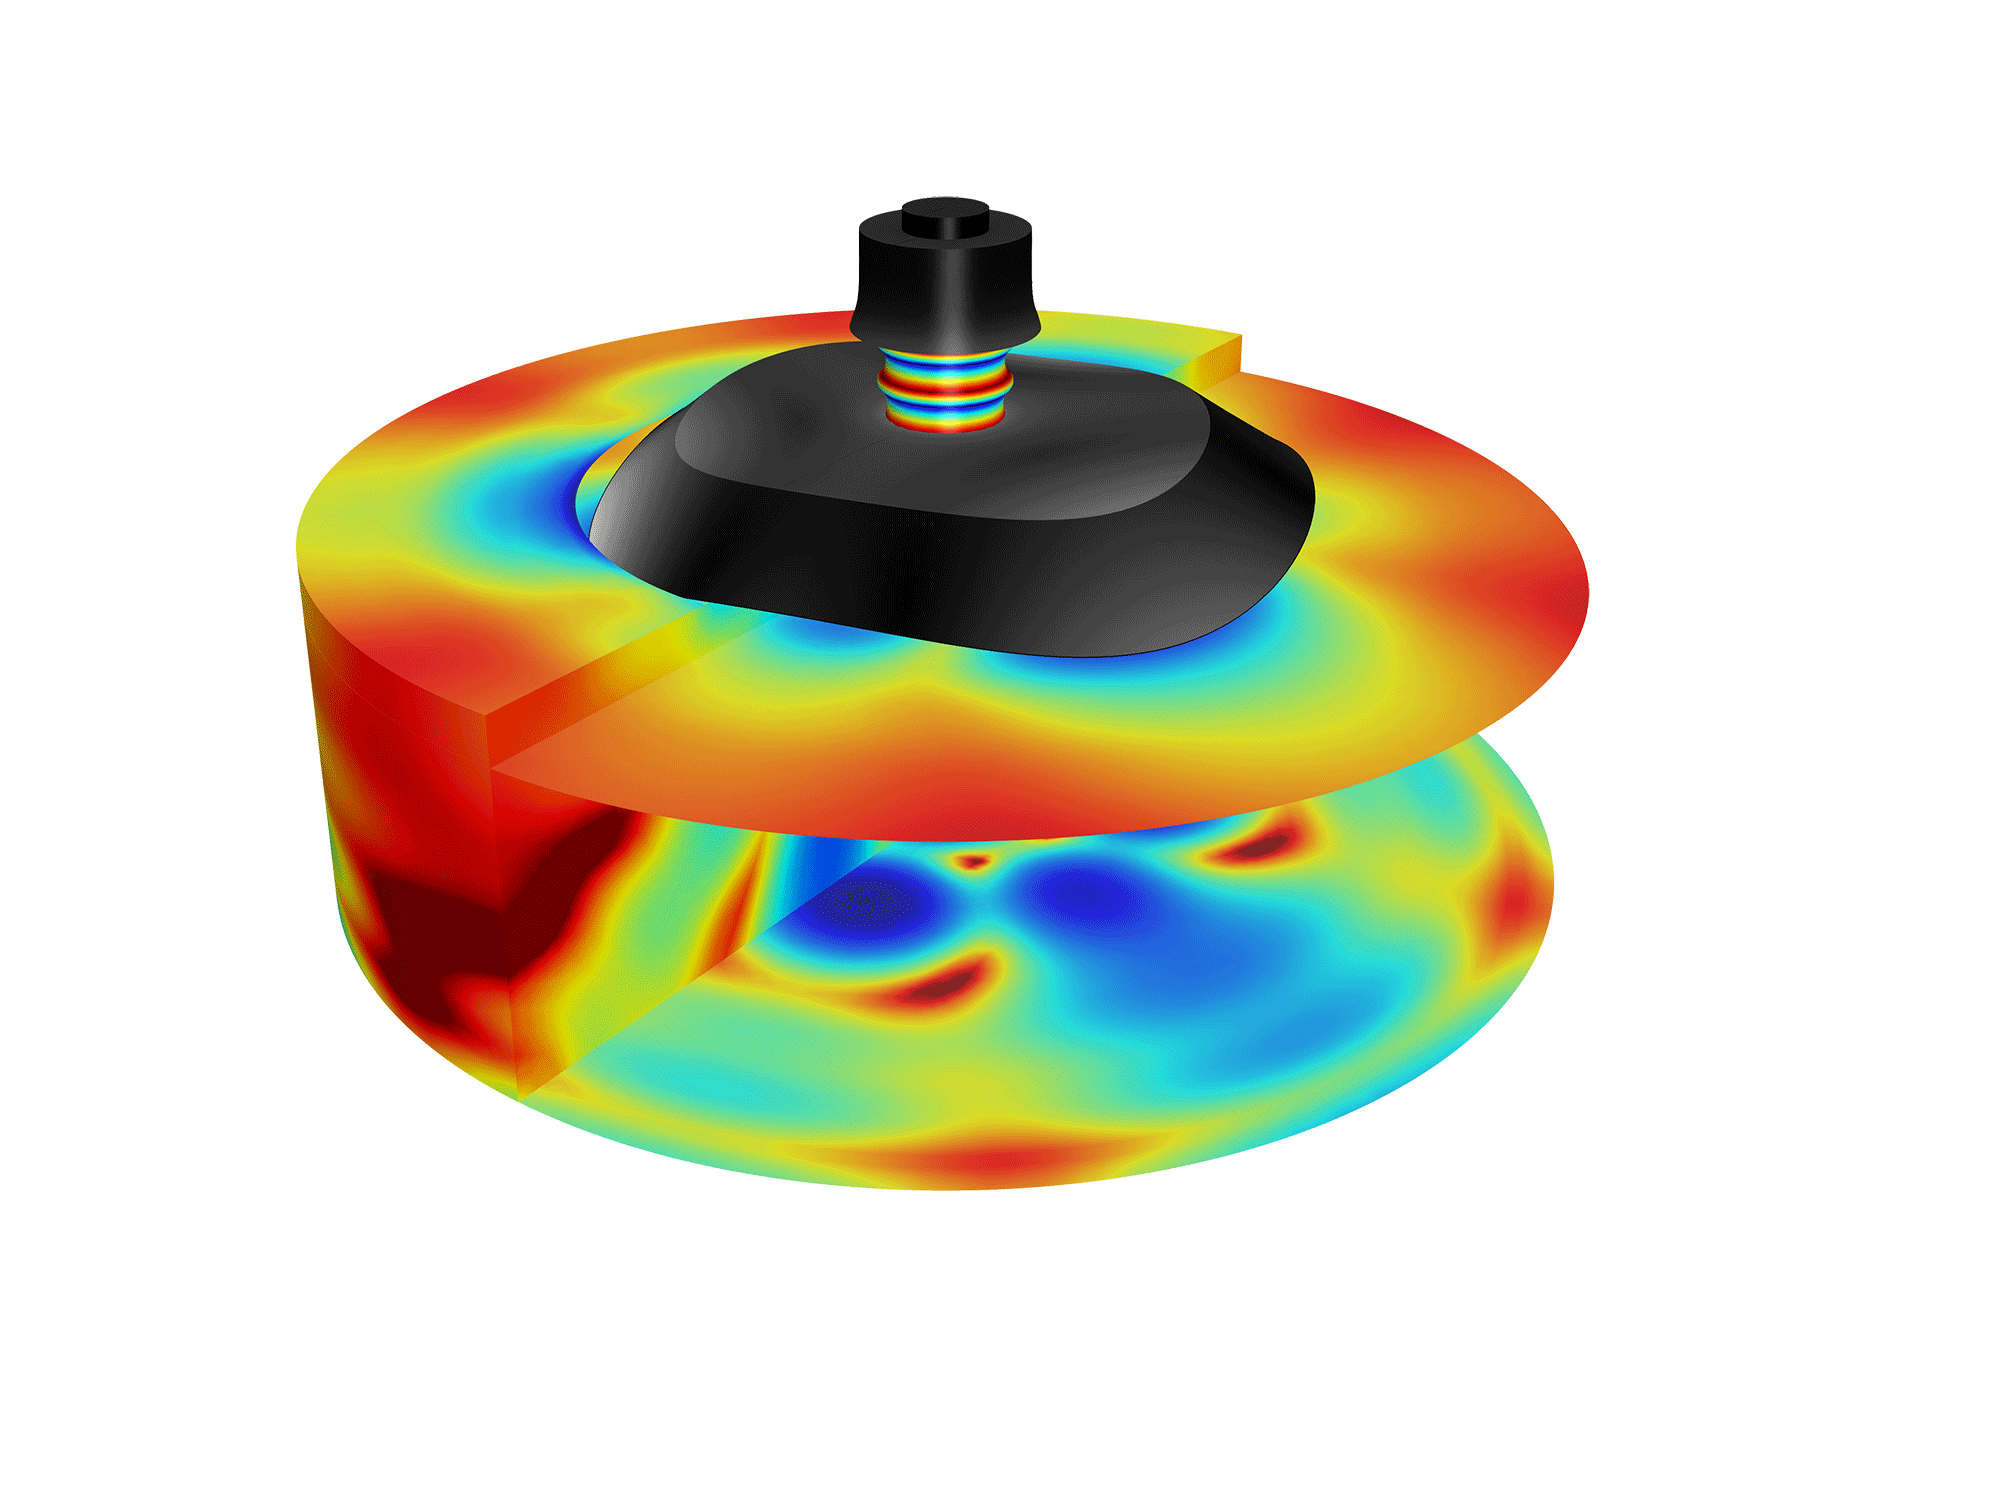 Acoustics and Vibration Analysis Software.